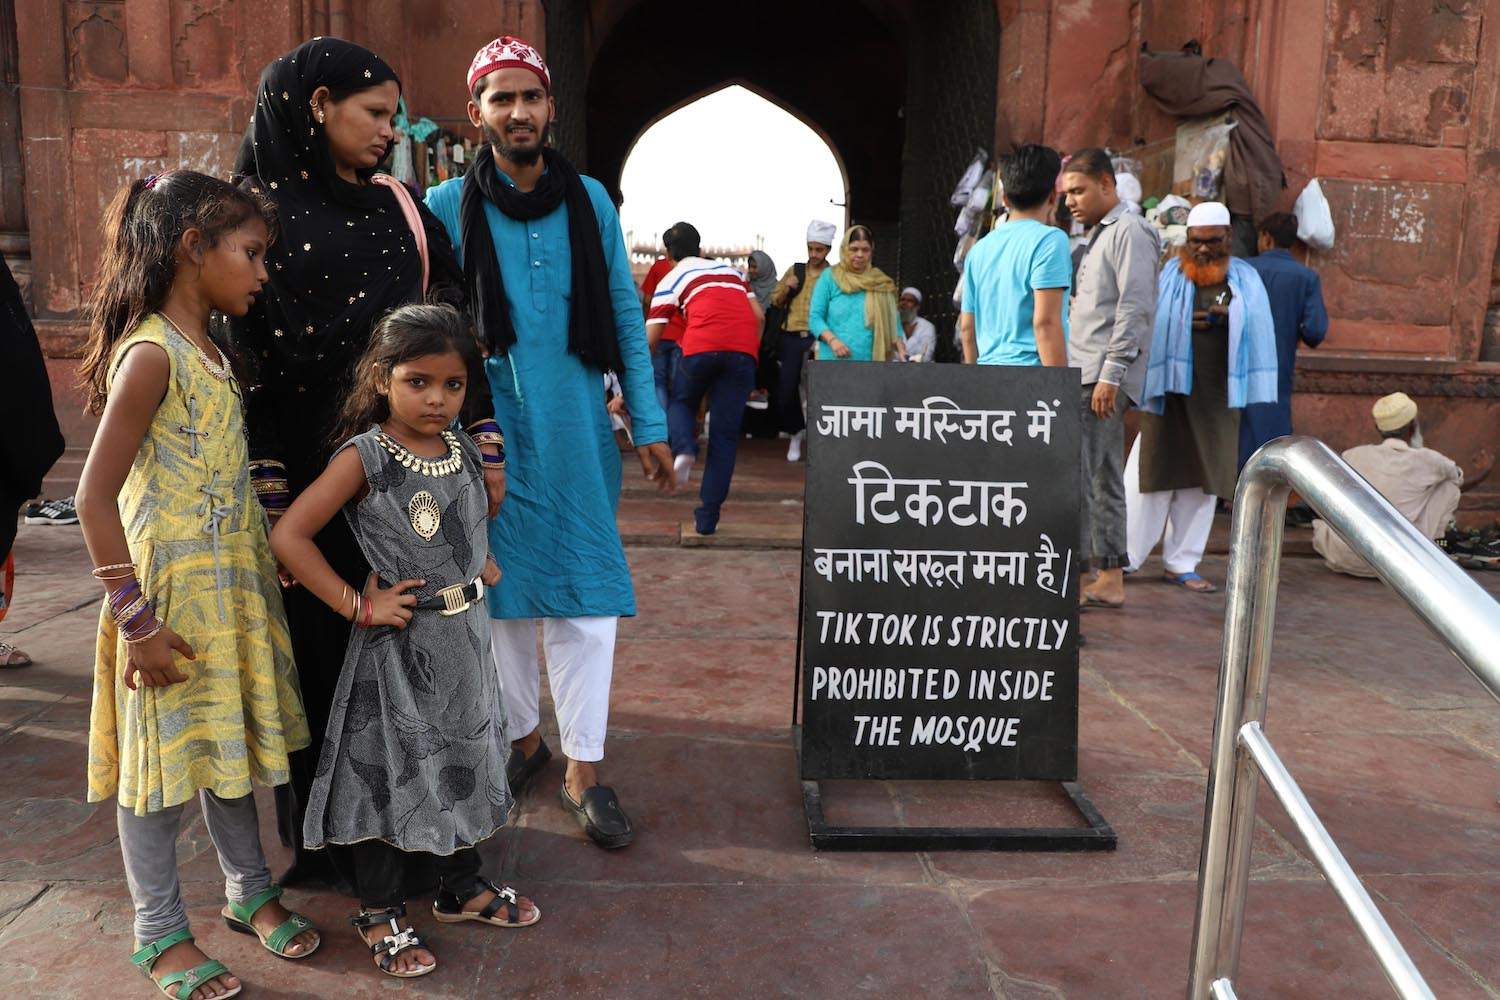 A sign outside Jama Masjid in New Delhi on June 16.